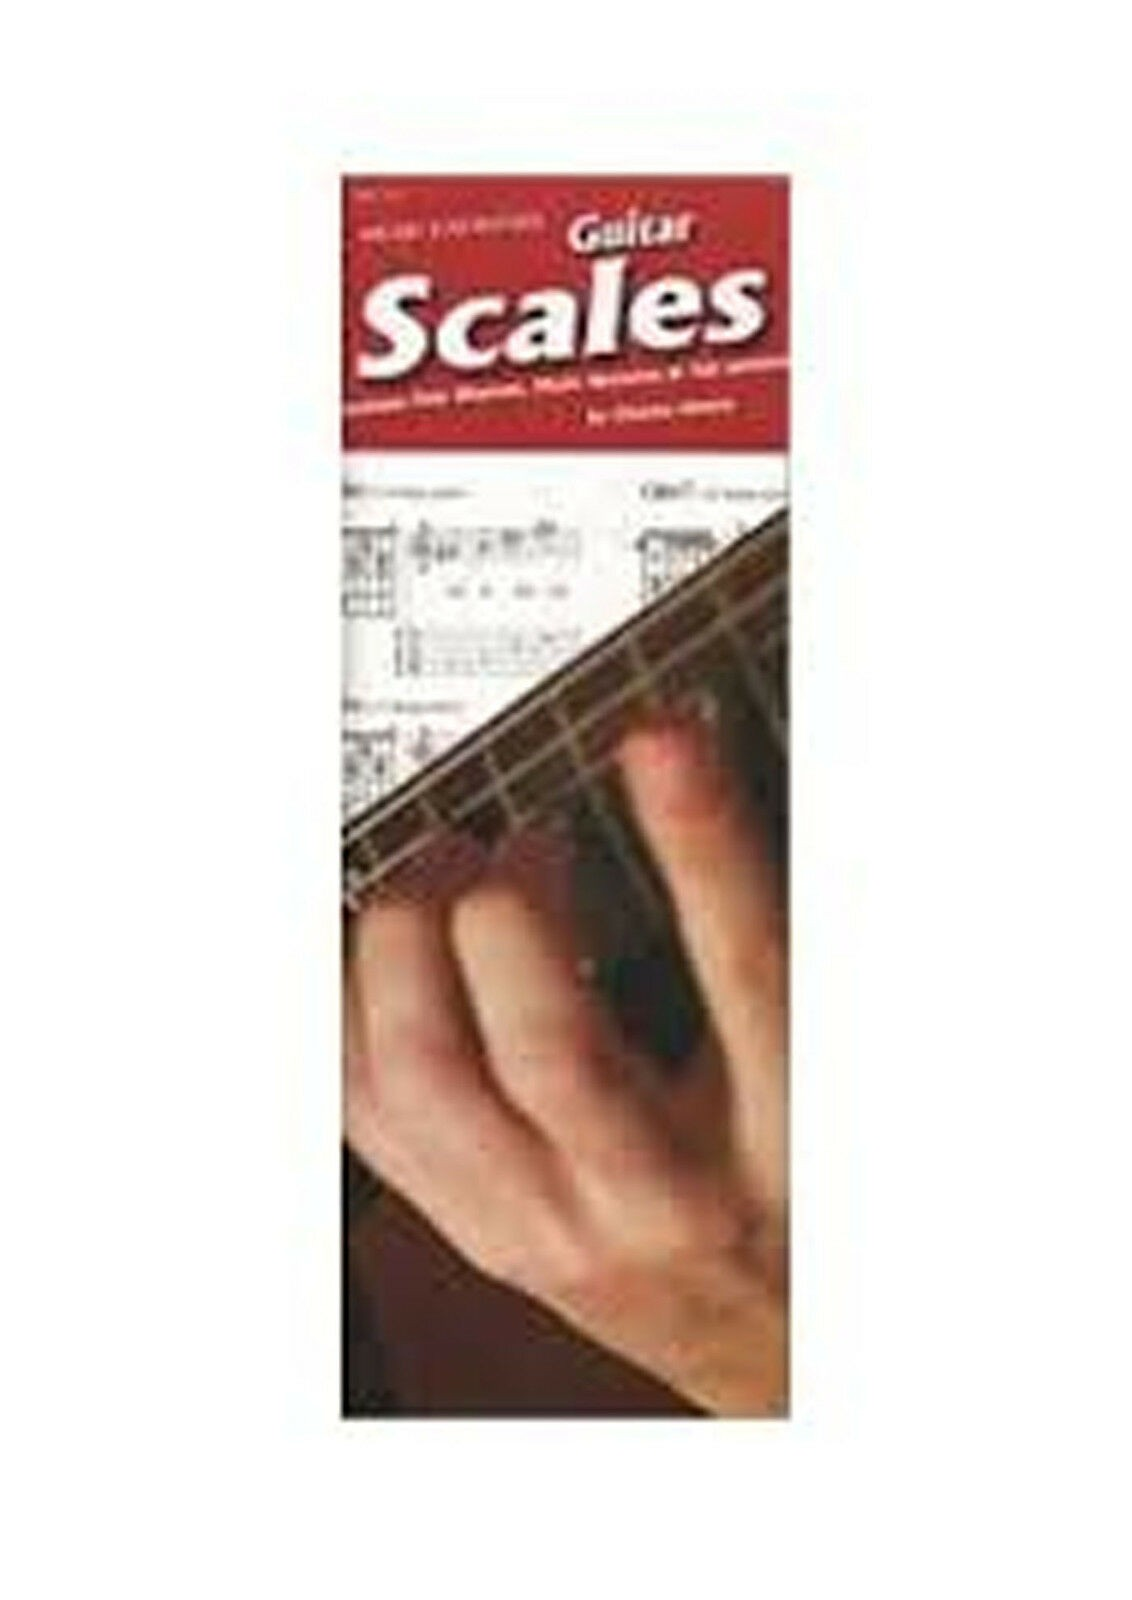 Guitar Scales Easy Diagrams Notes Tab Charles Amore Music Spiral Bound Book S126